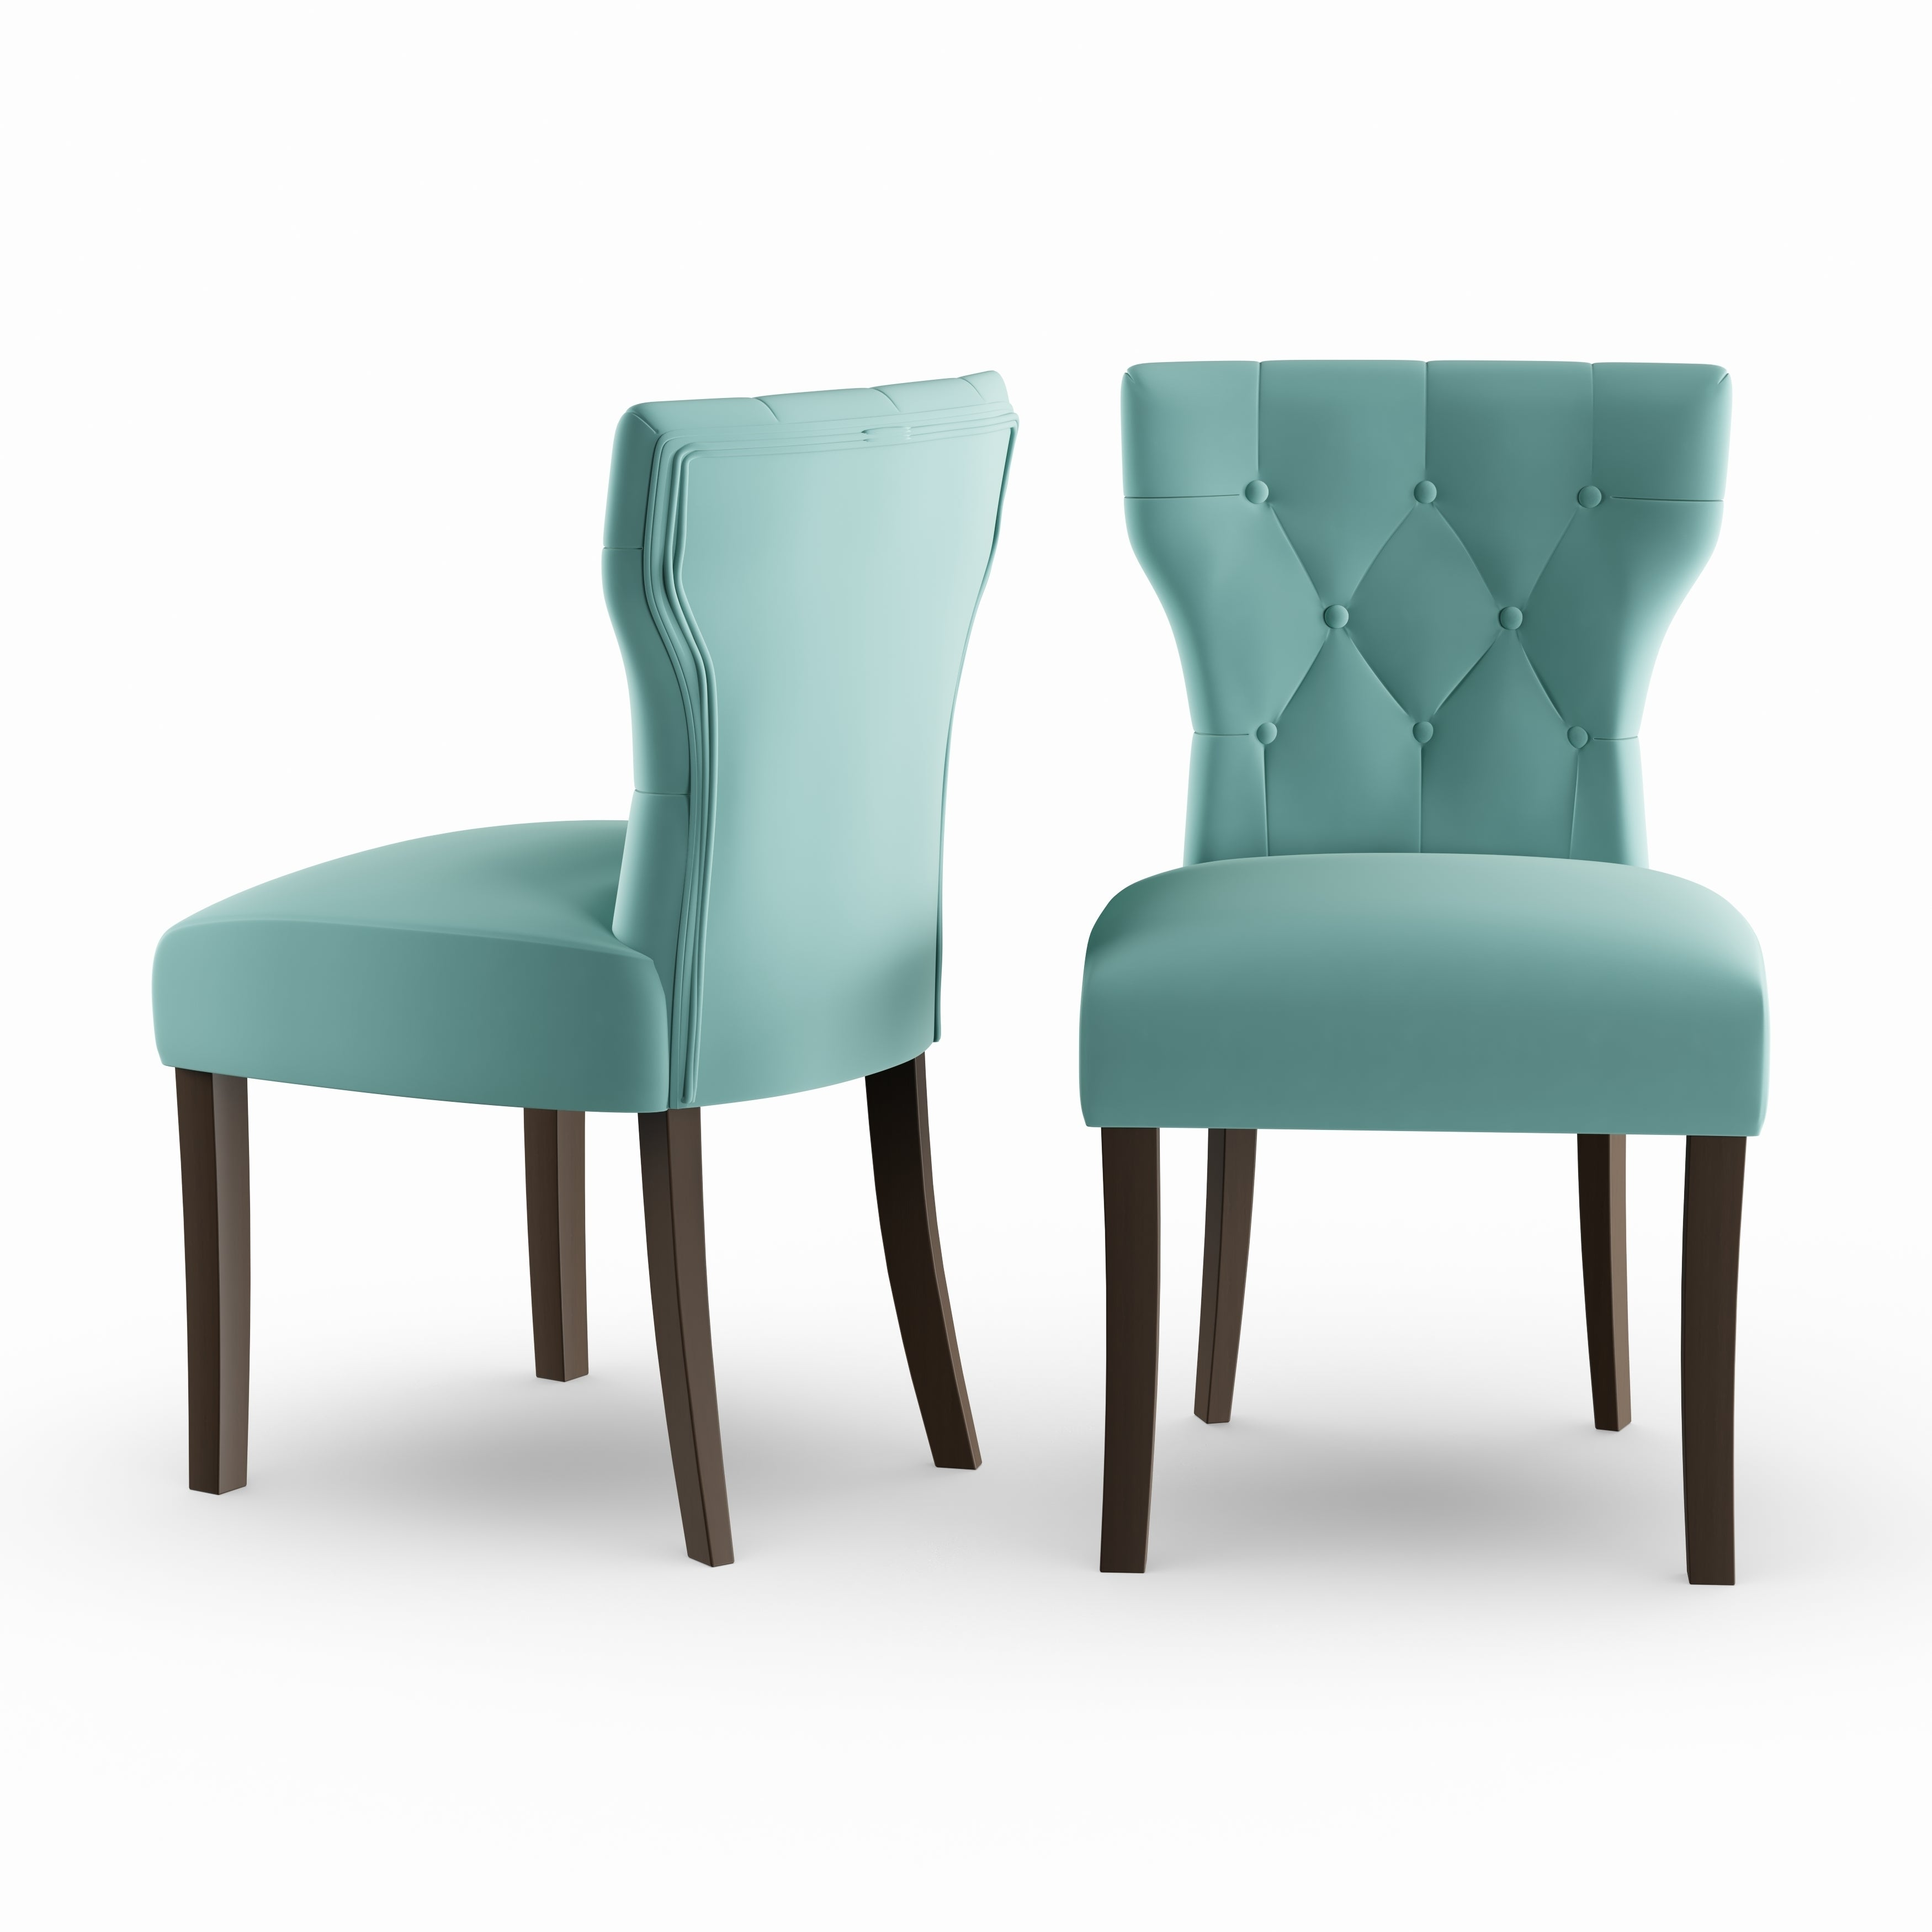 Shop gracewood hollow hurston deep turquoise blue velvet upholstered armless dining chairs set of 2 on sale free shipping today overstock com